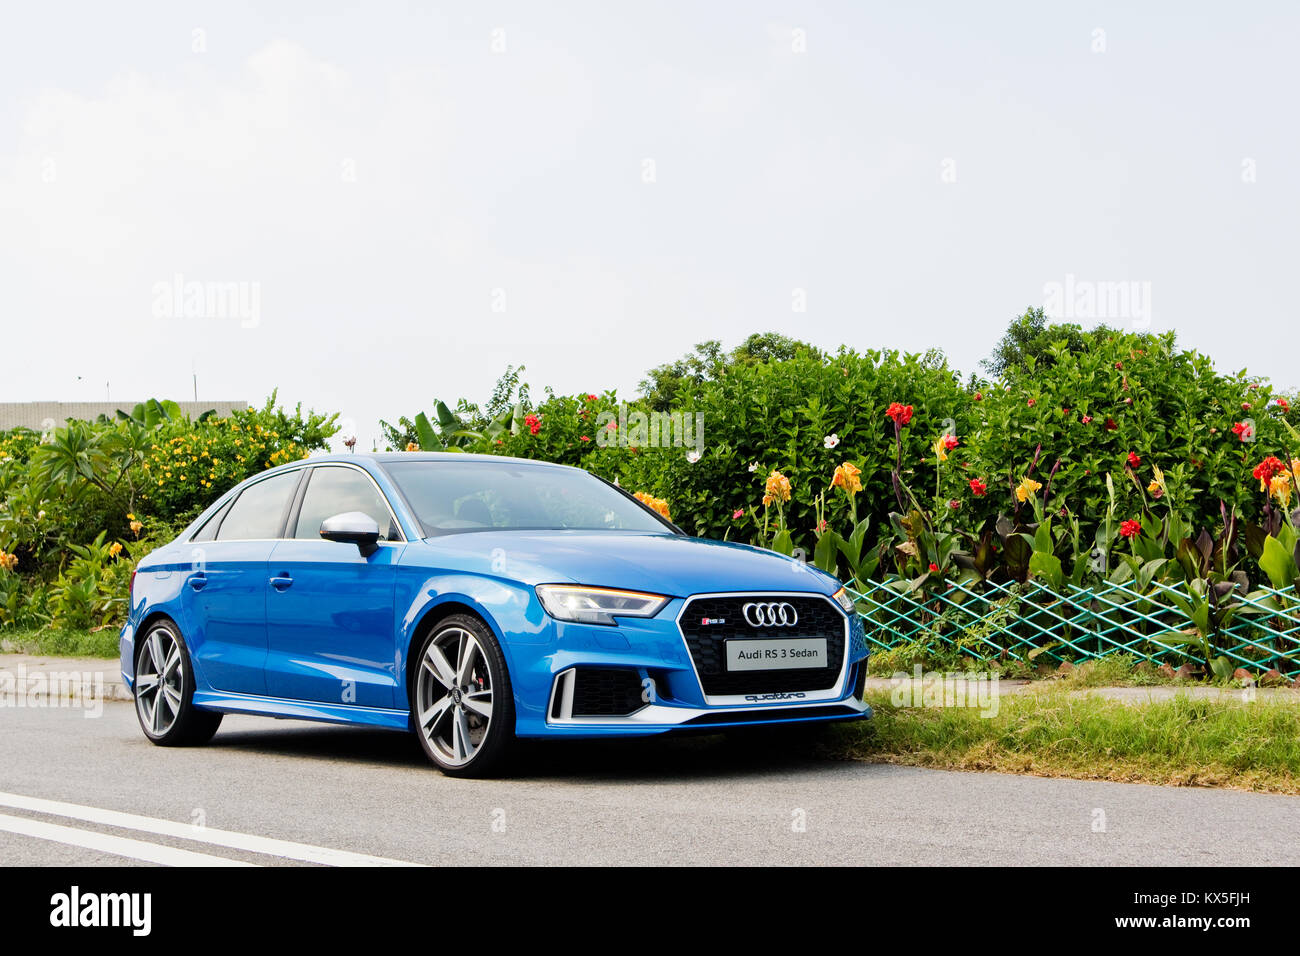 hongkong, china, 21.august 2017: audi rs3 limousine 2017 test drive